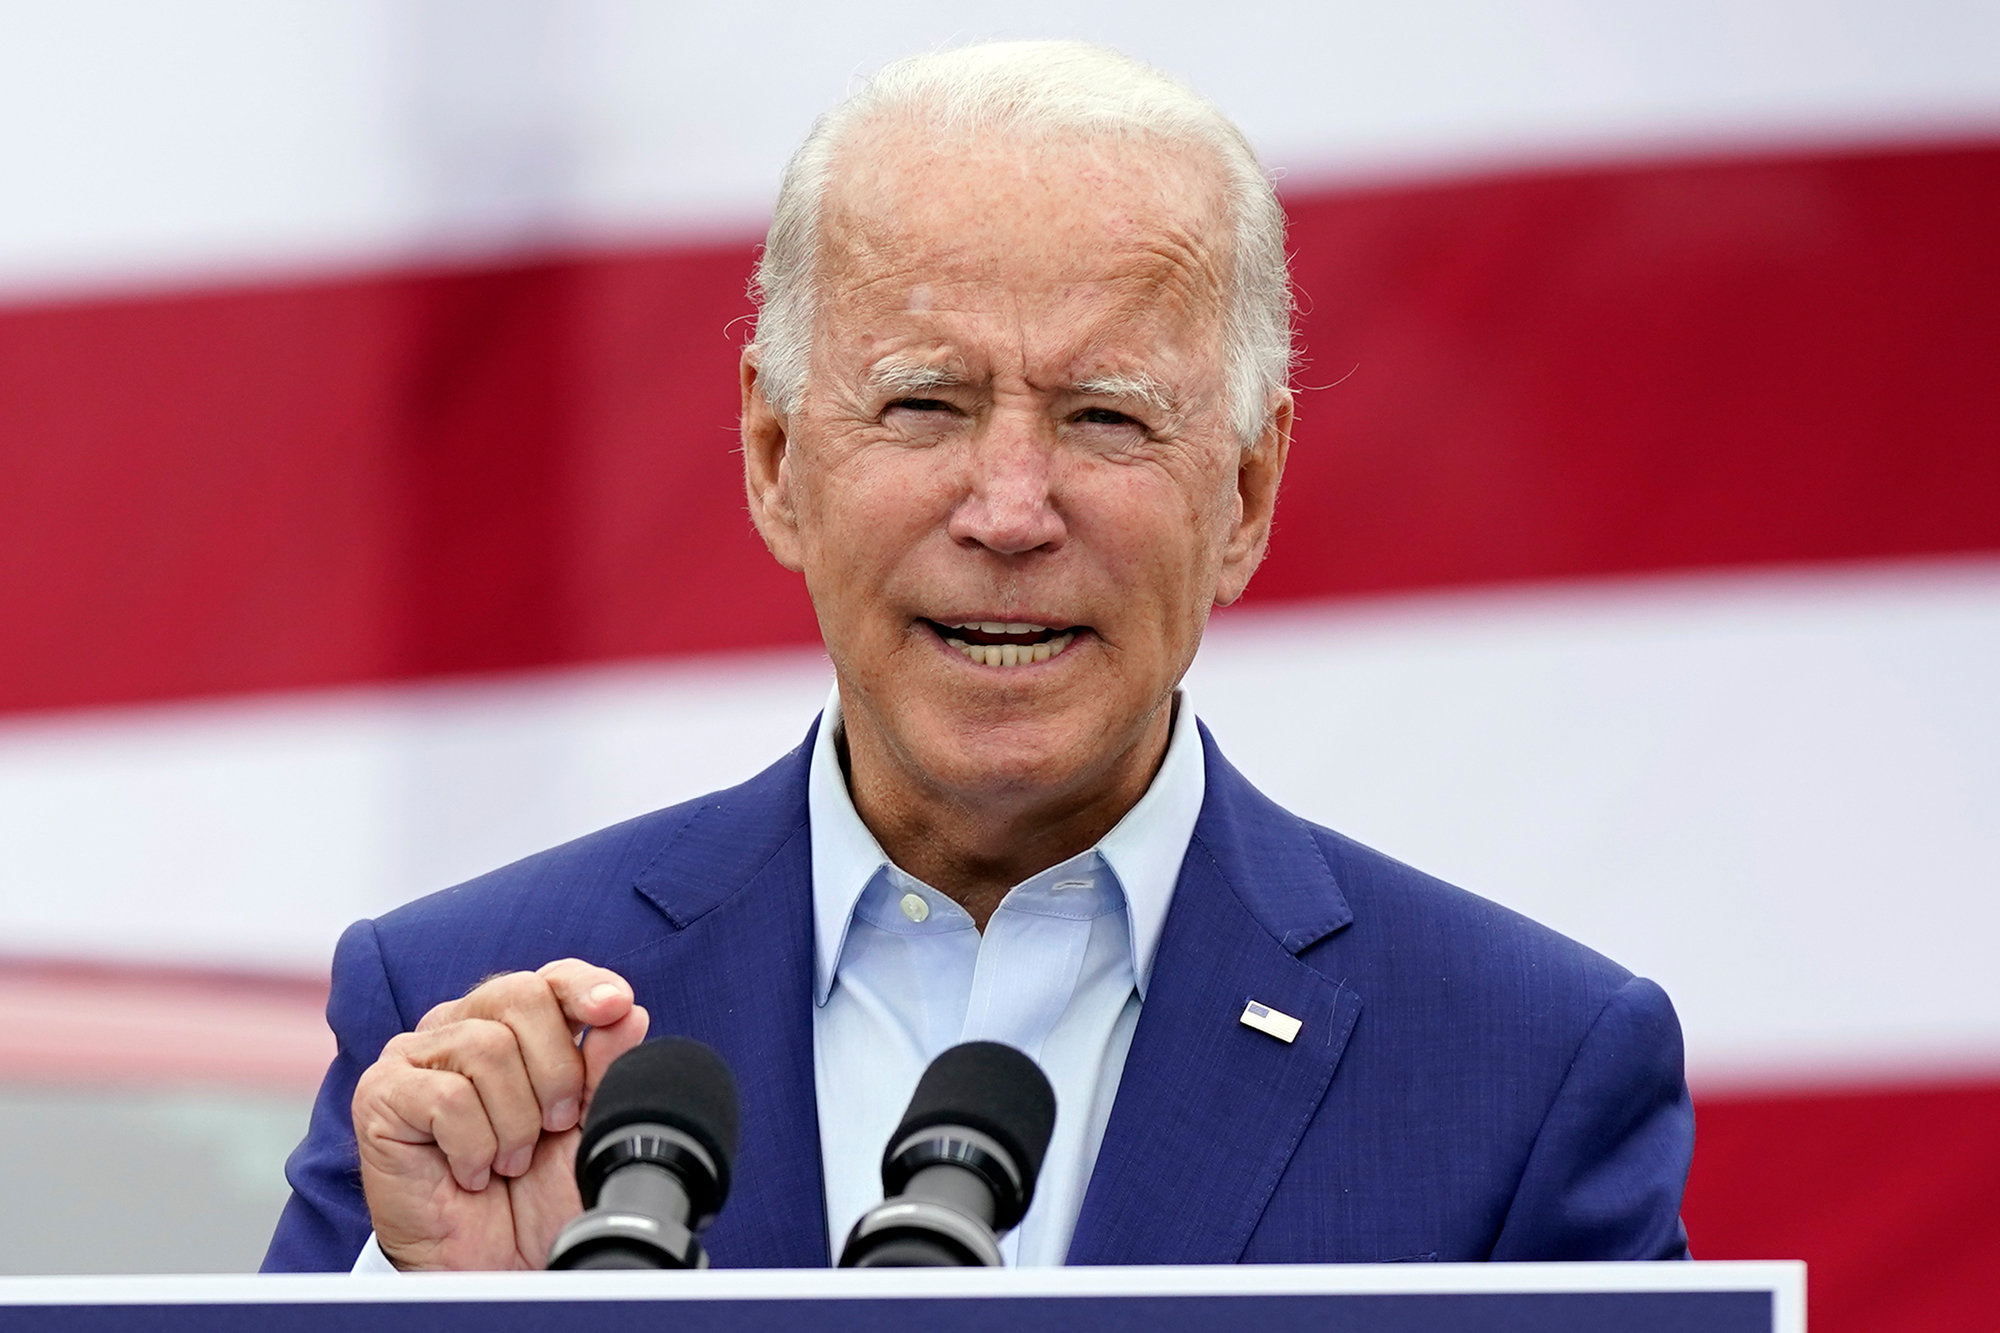 What to know about Joe Biden's policy proposals ahead of CNN's town hall